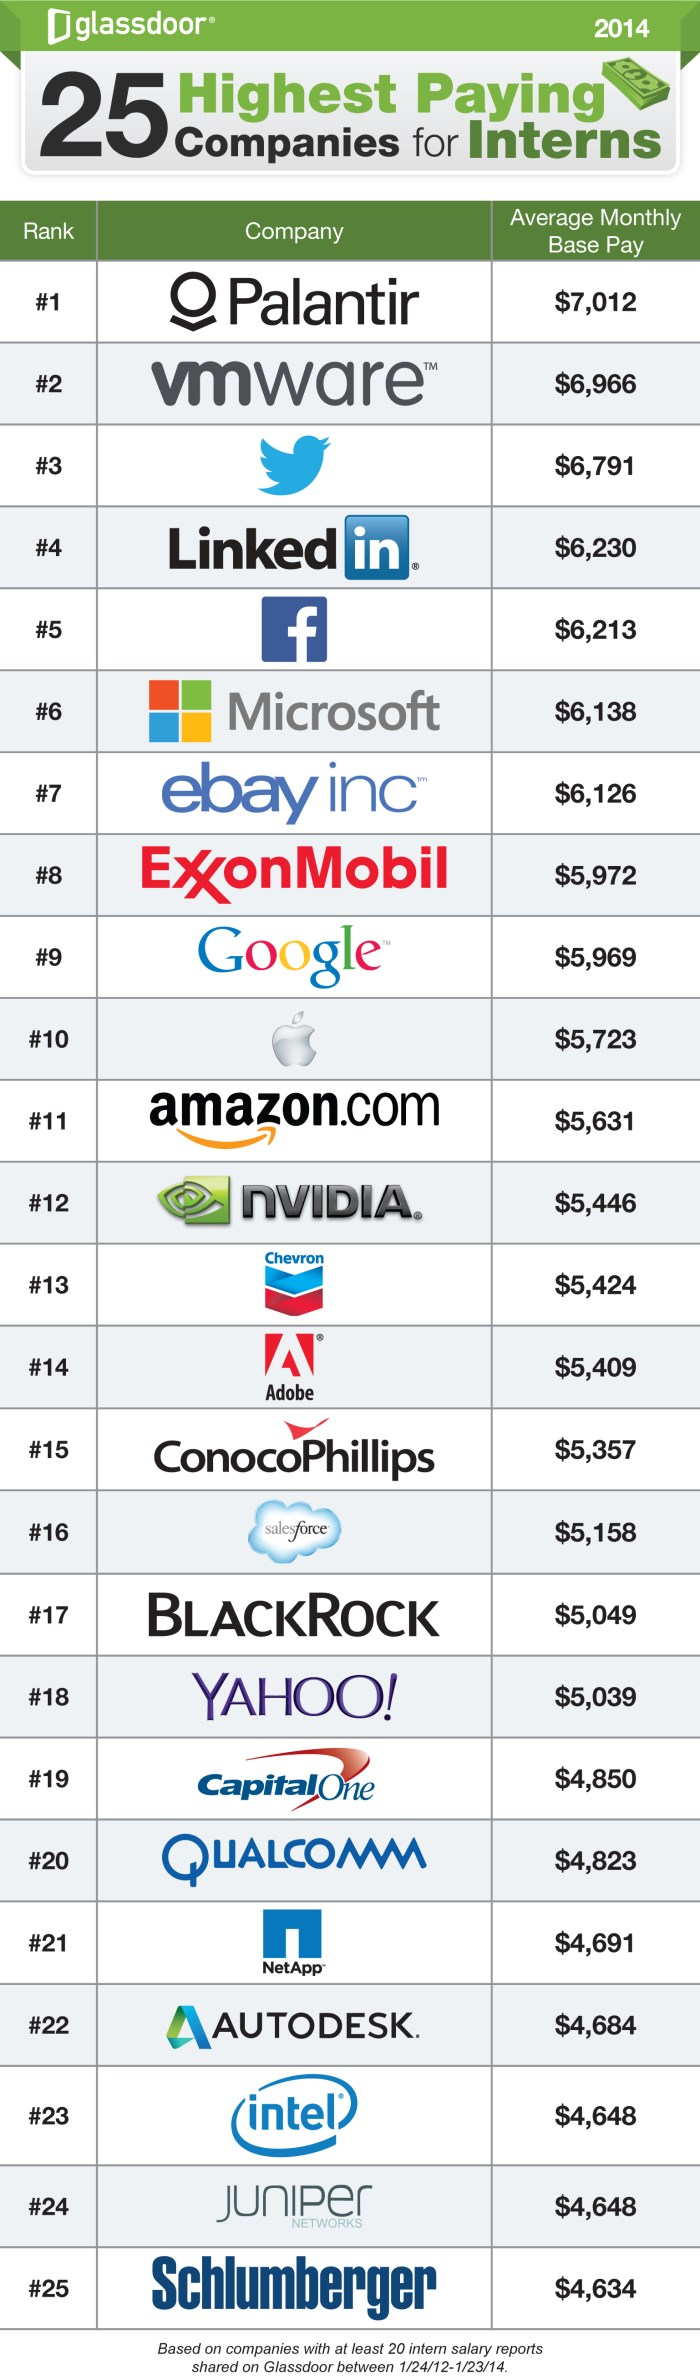 Top 25 Highest Paying Companies For Internships